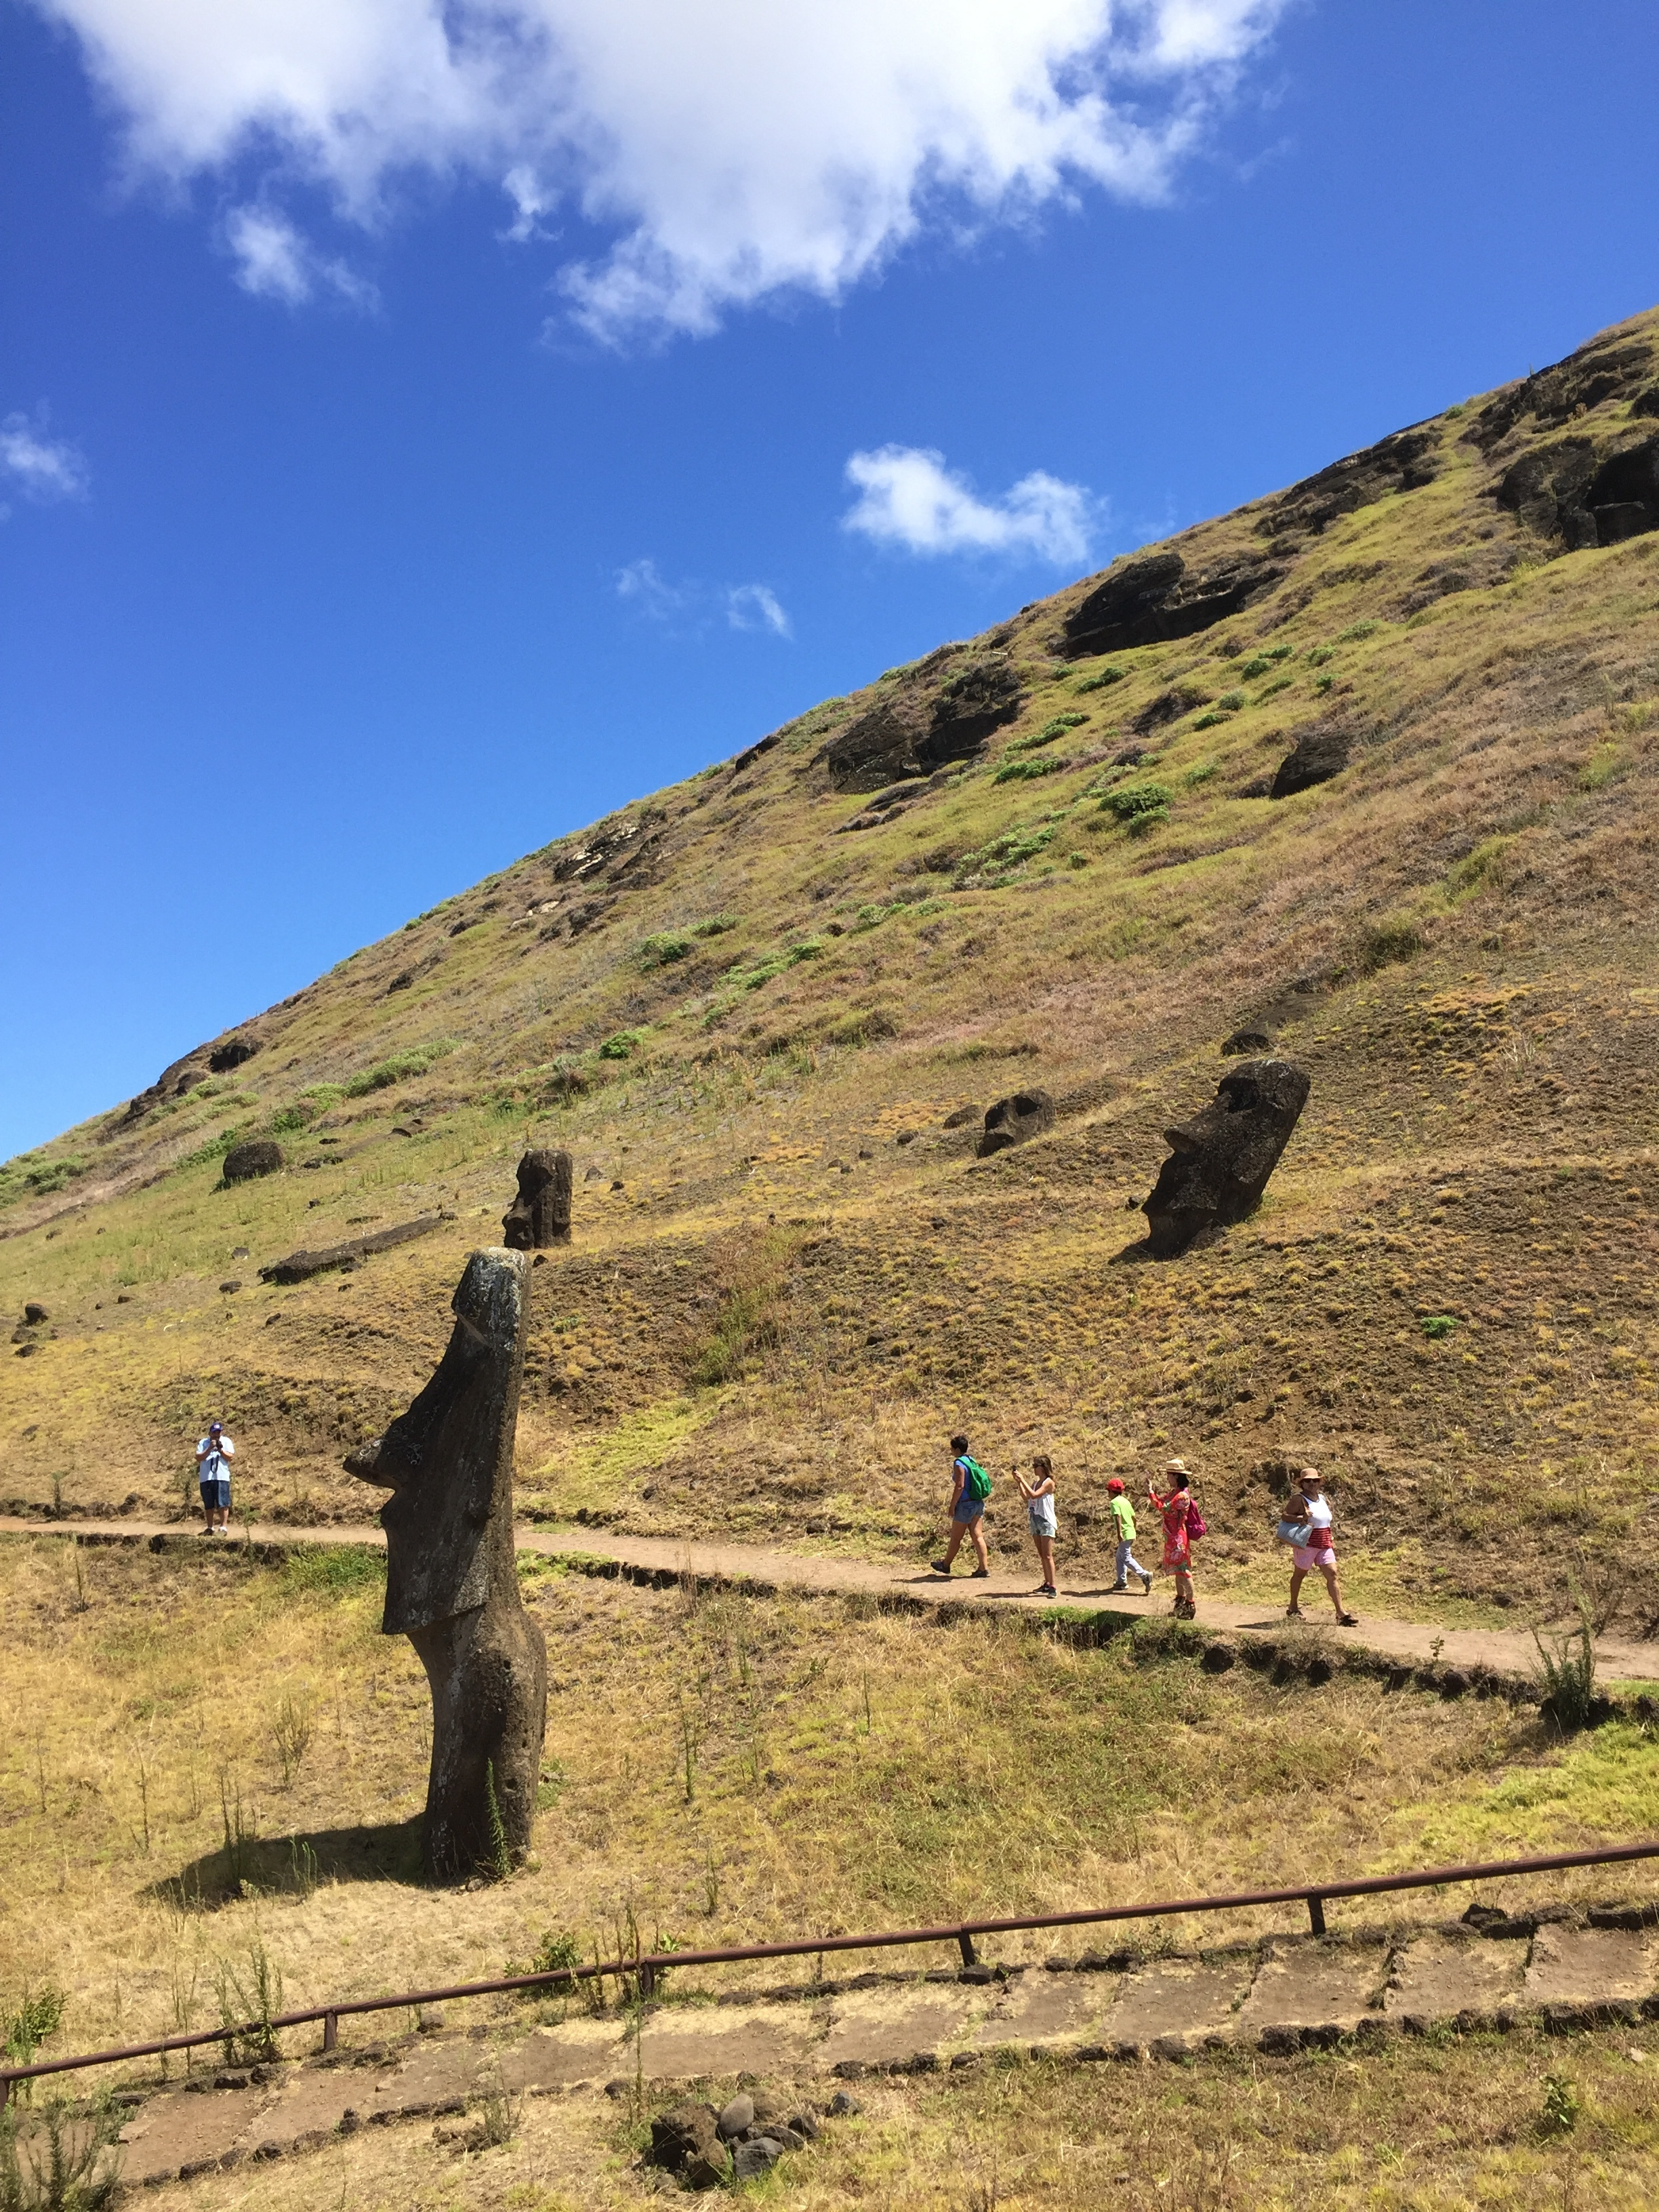 You can hike around the Moia scattered about the hillsides of Easter Island.